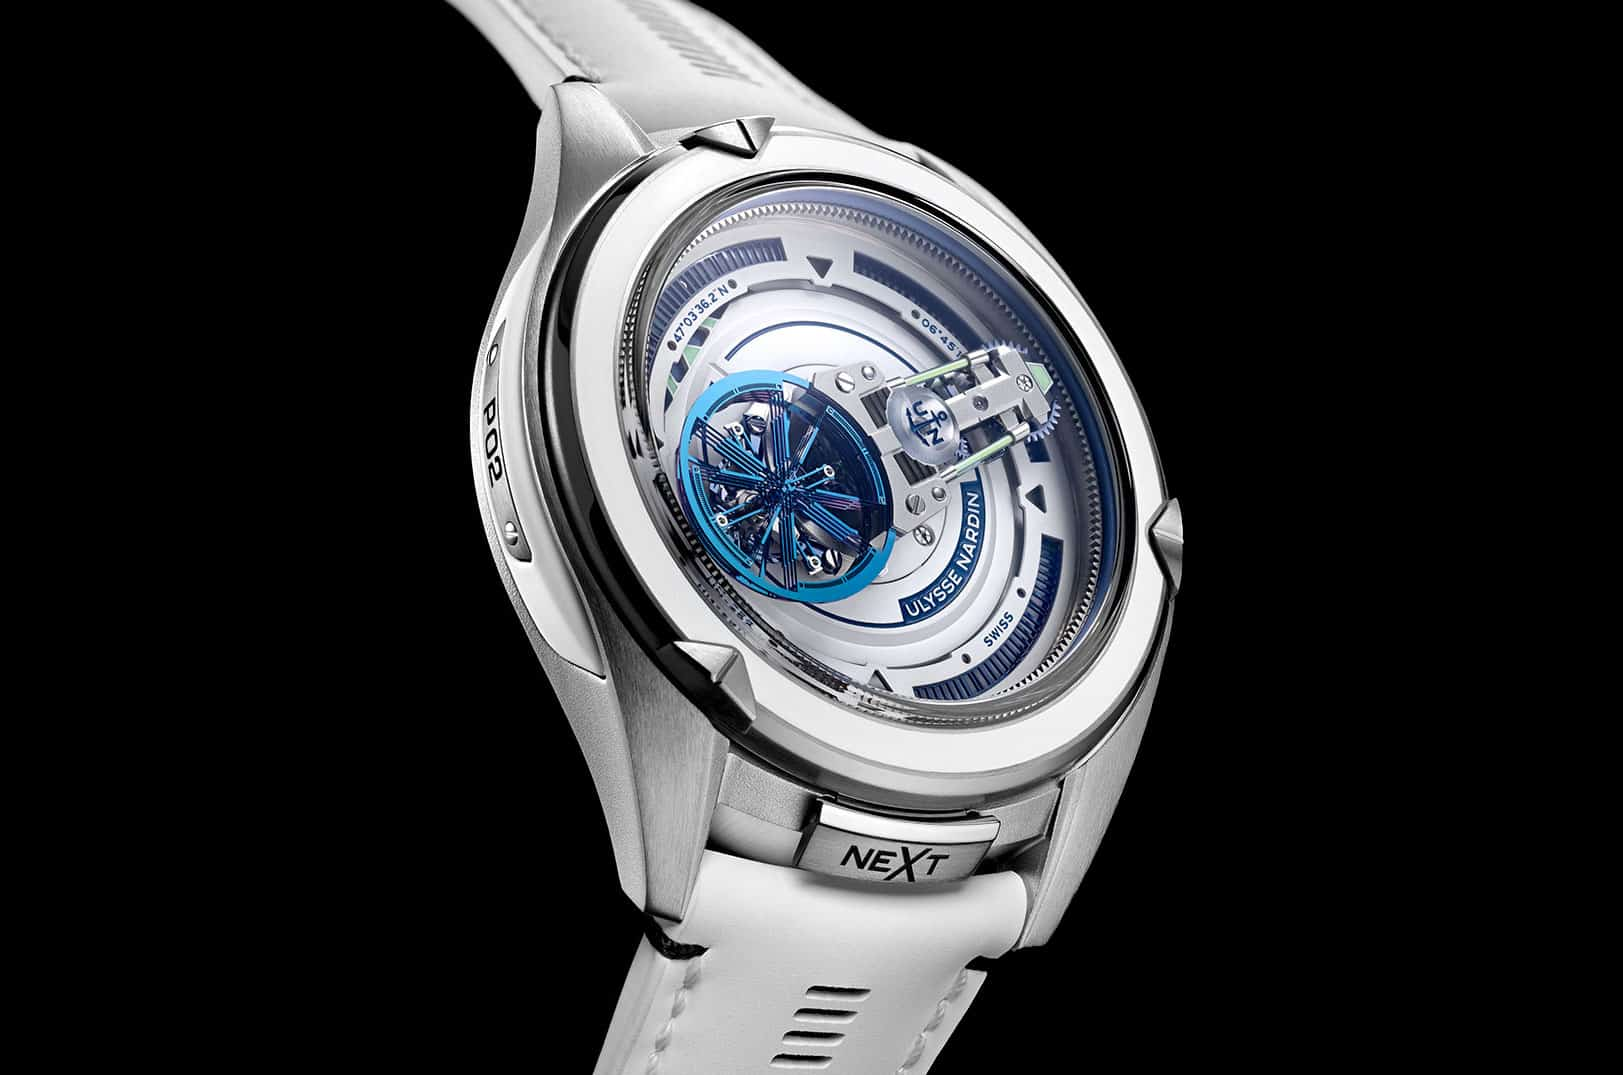 Ulysse Nardin Freak neXT Watch 1